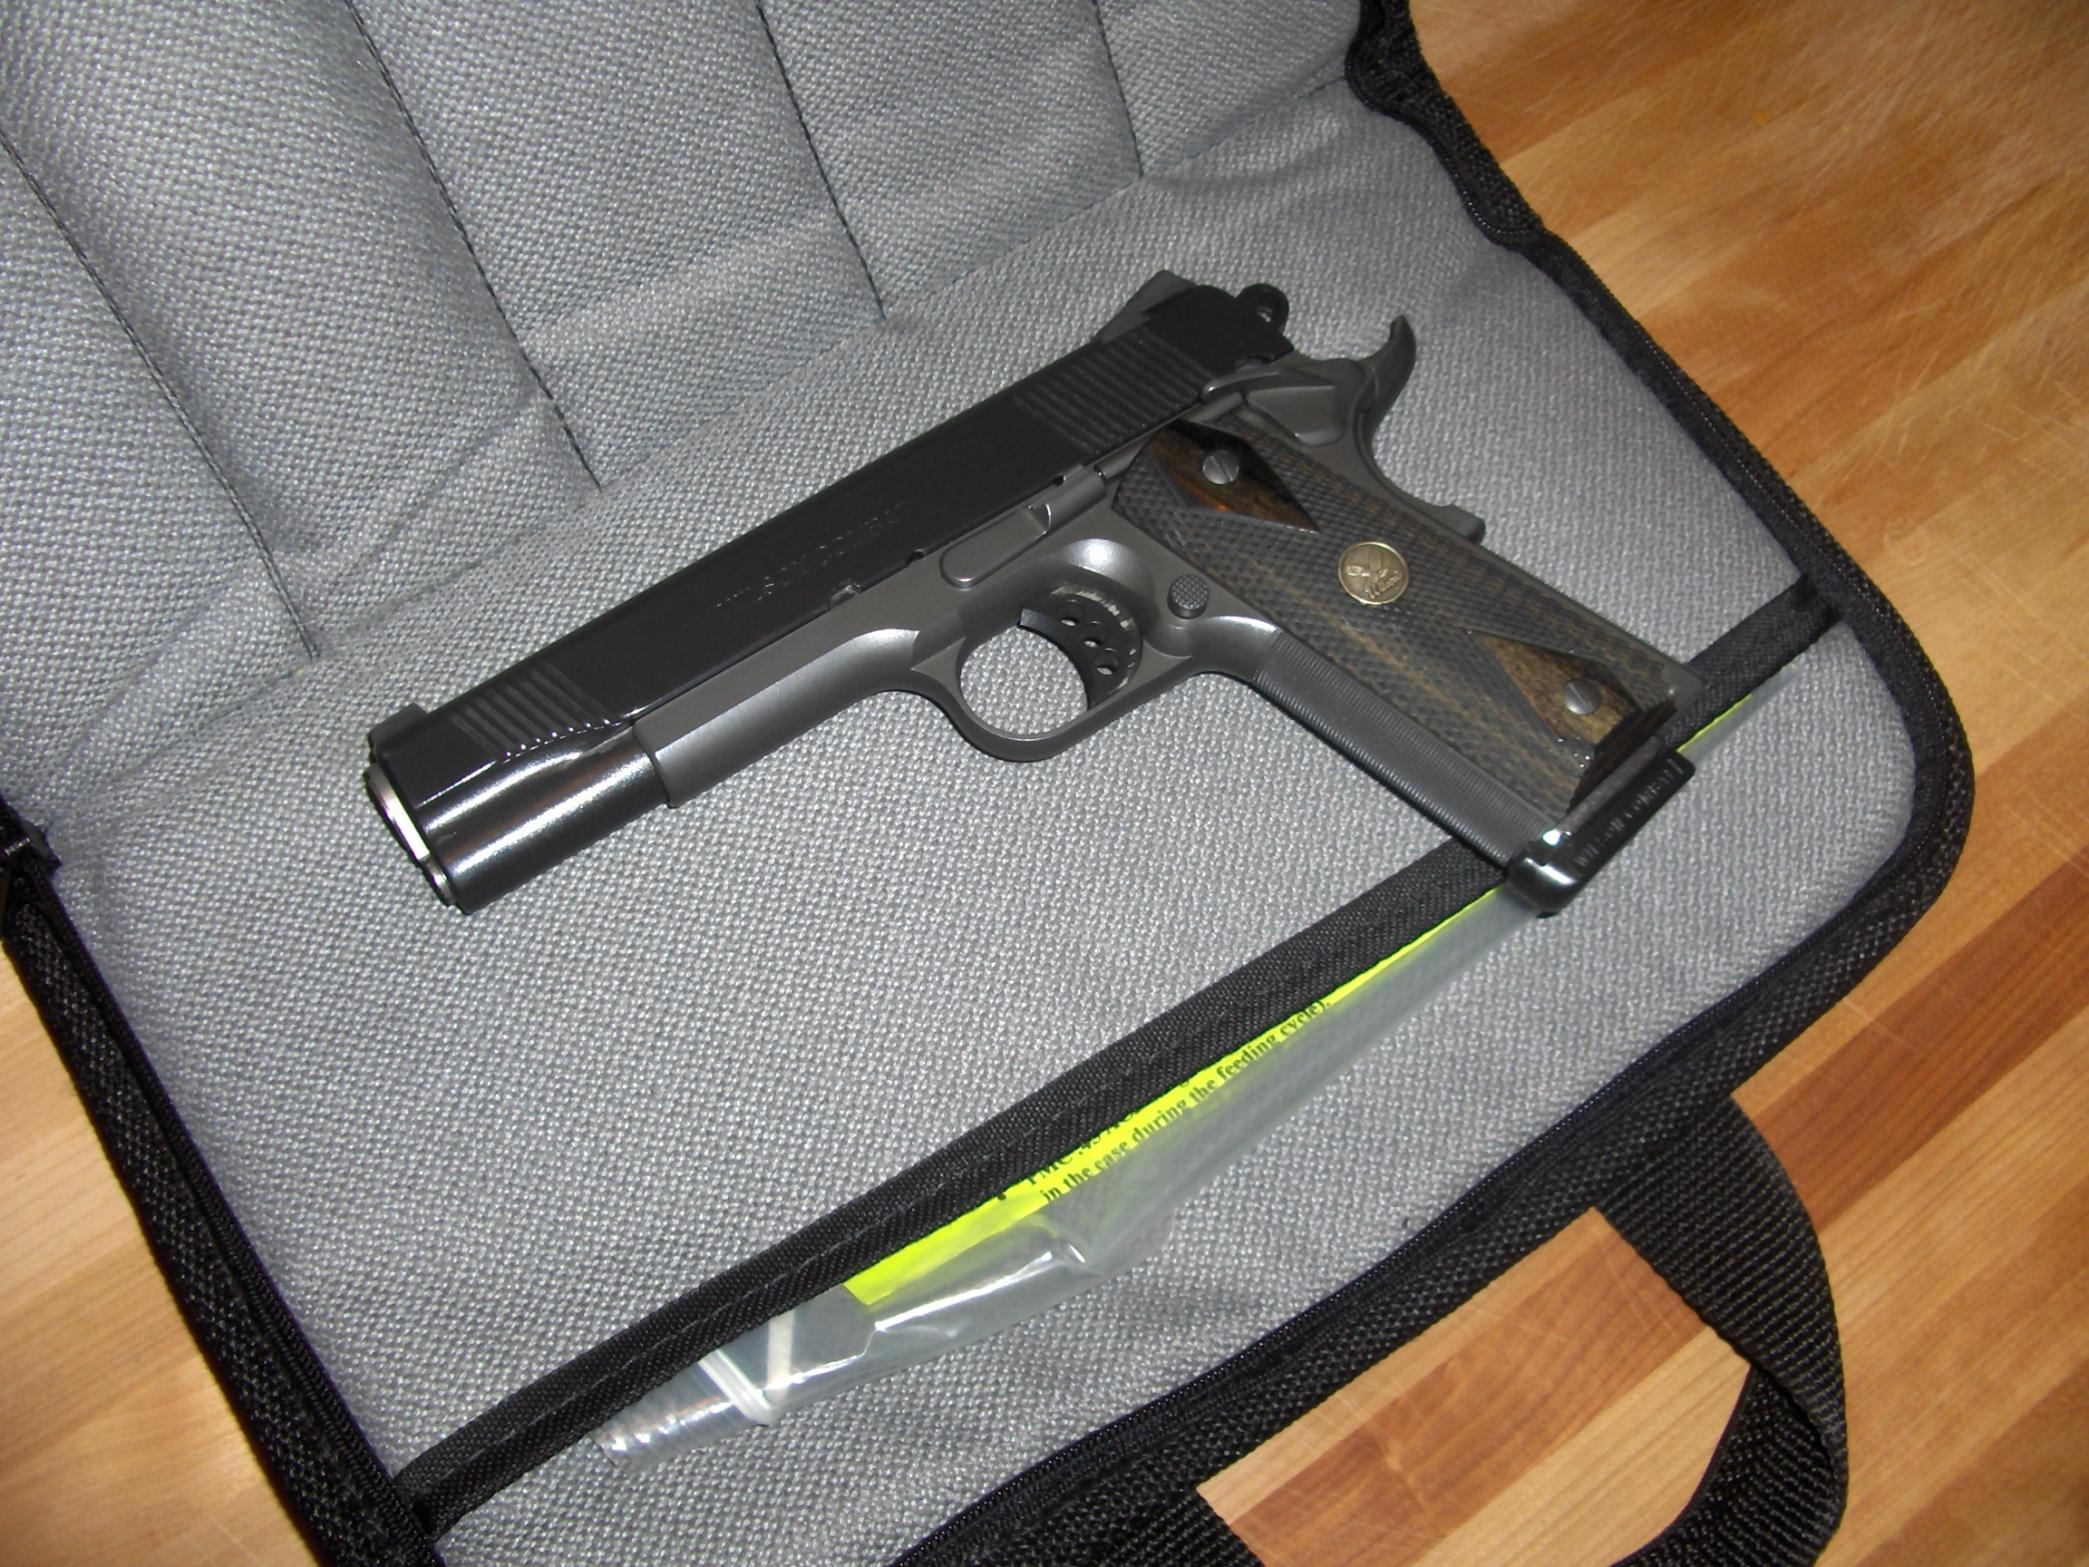 Here it is, new to me Wilson Combat CQB-002.jpg